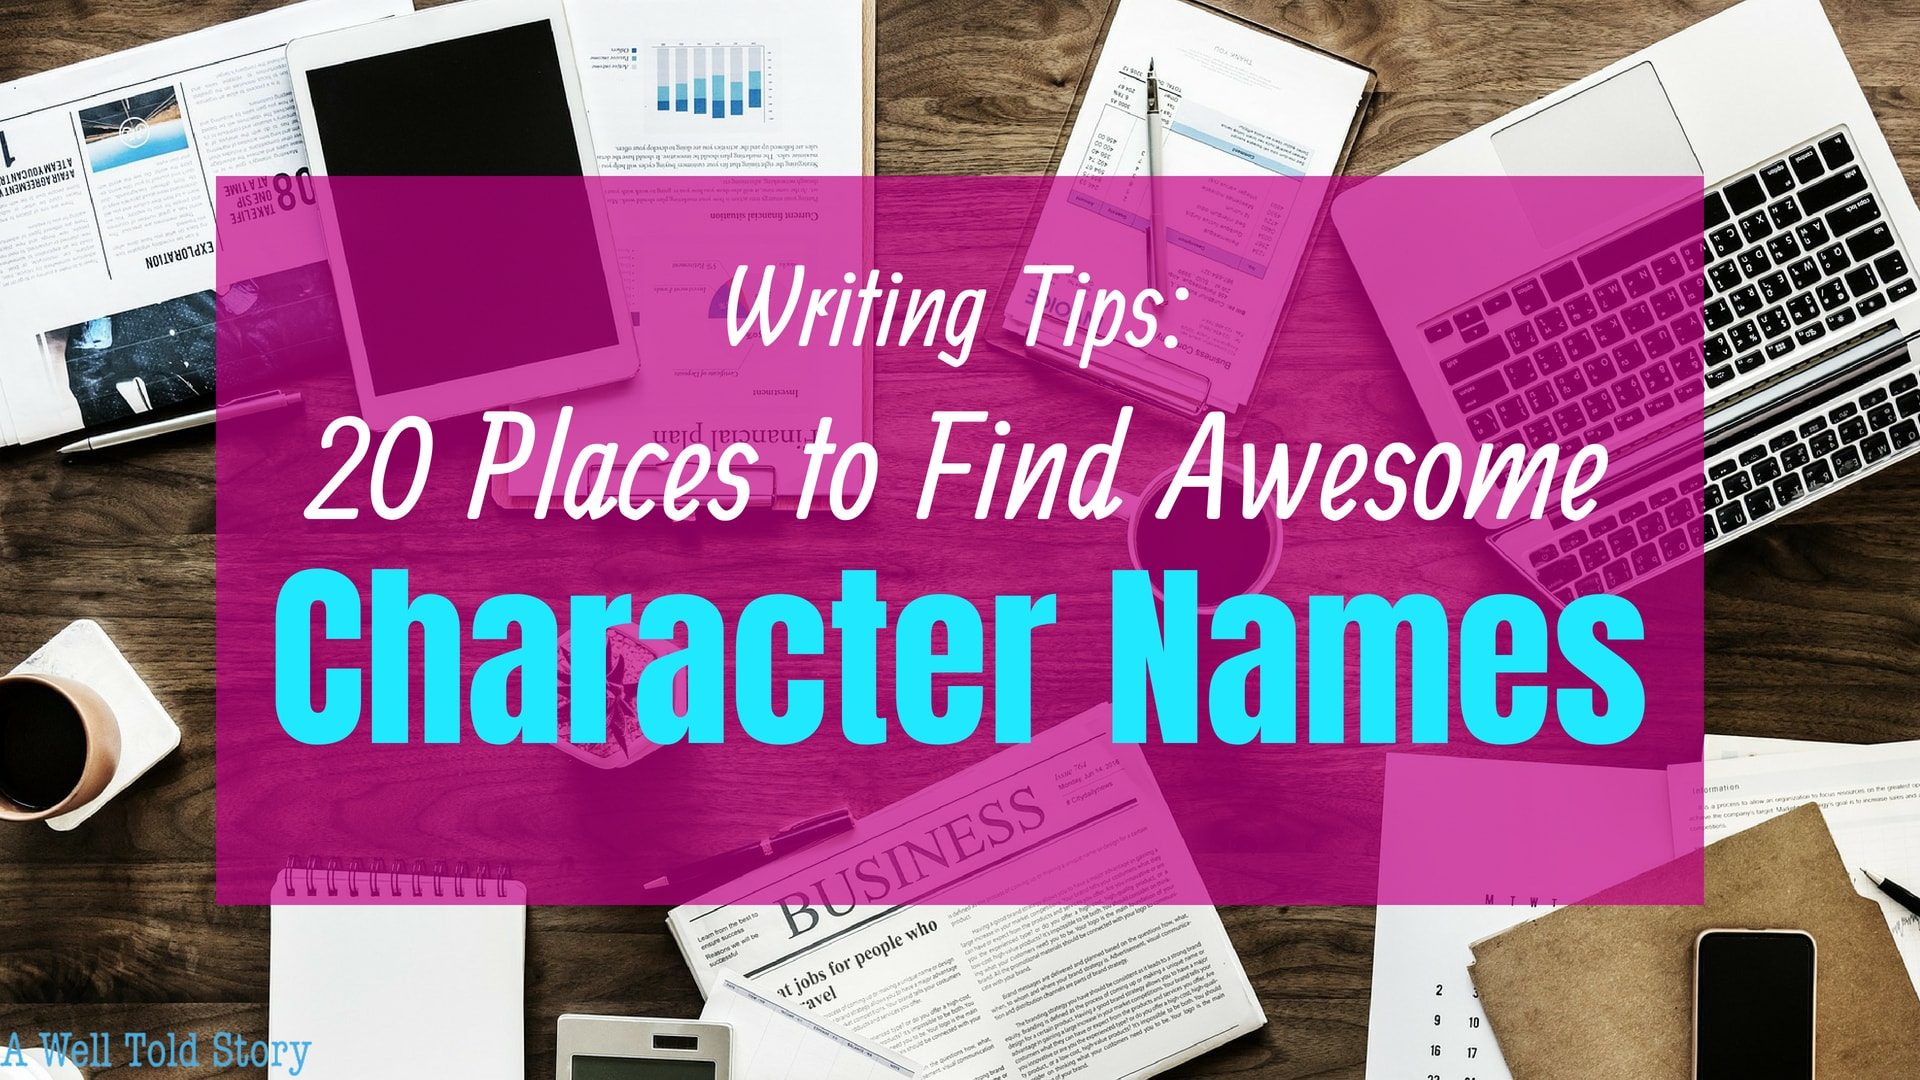 20 Places to find awesome character names